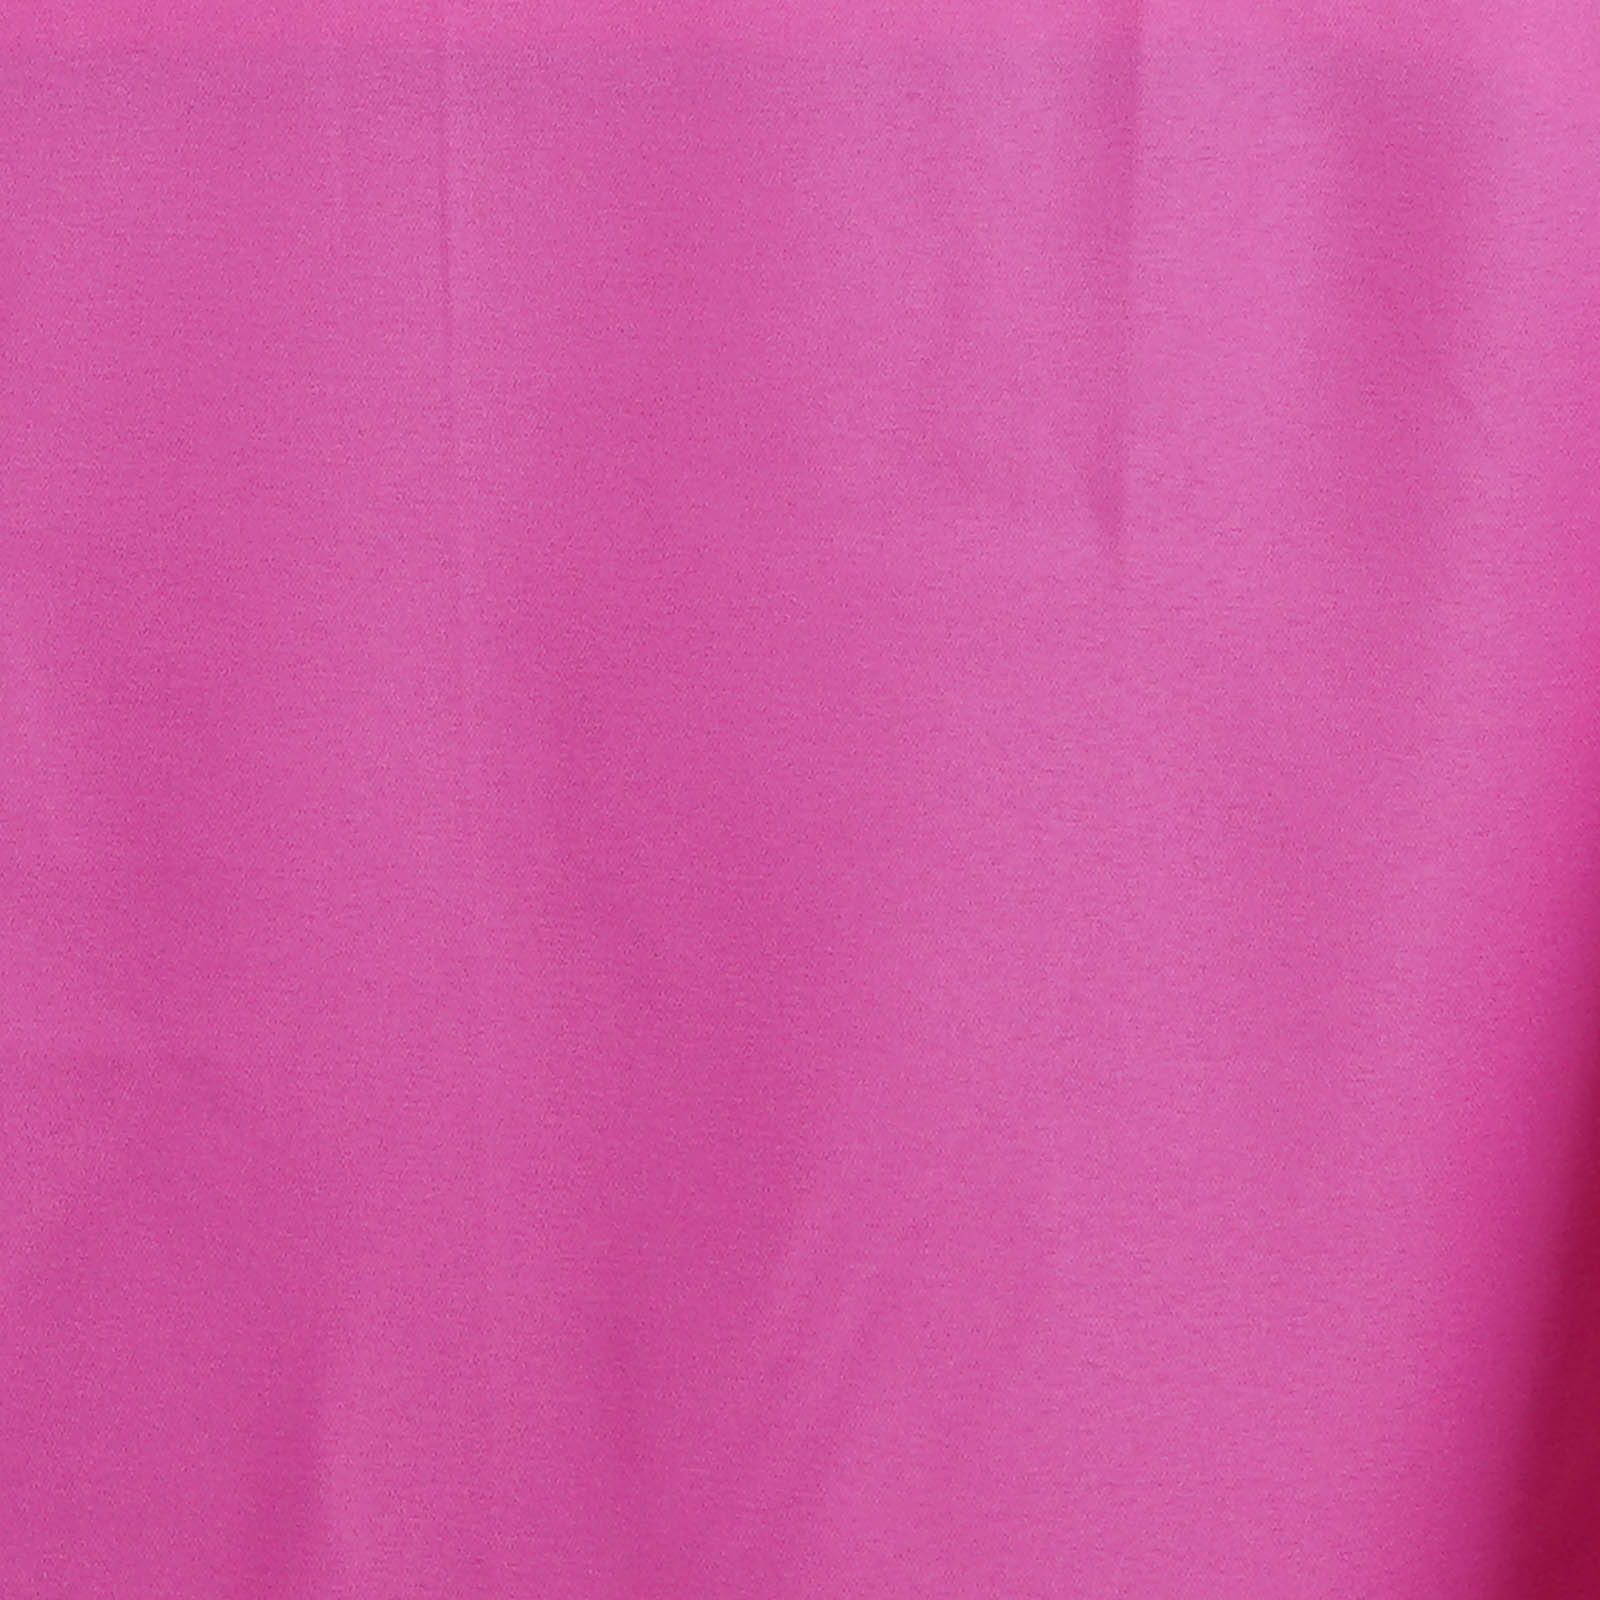 90x156-034-Polyester-Rectangle-Tablecloths-For-Wedding-Party-Banquet-Events thumbnail 24